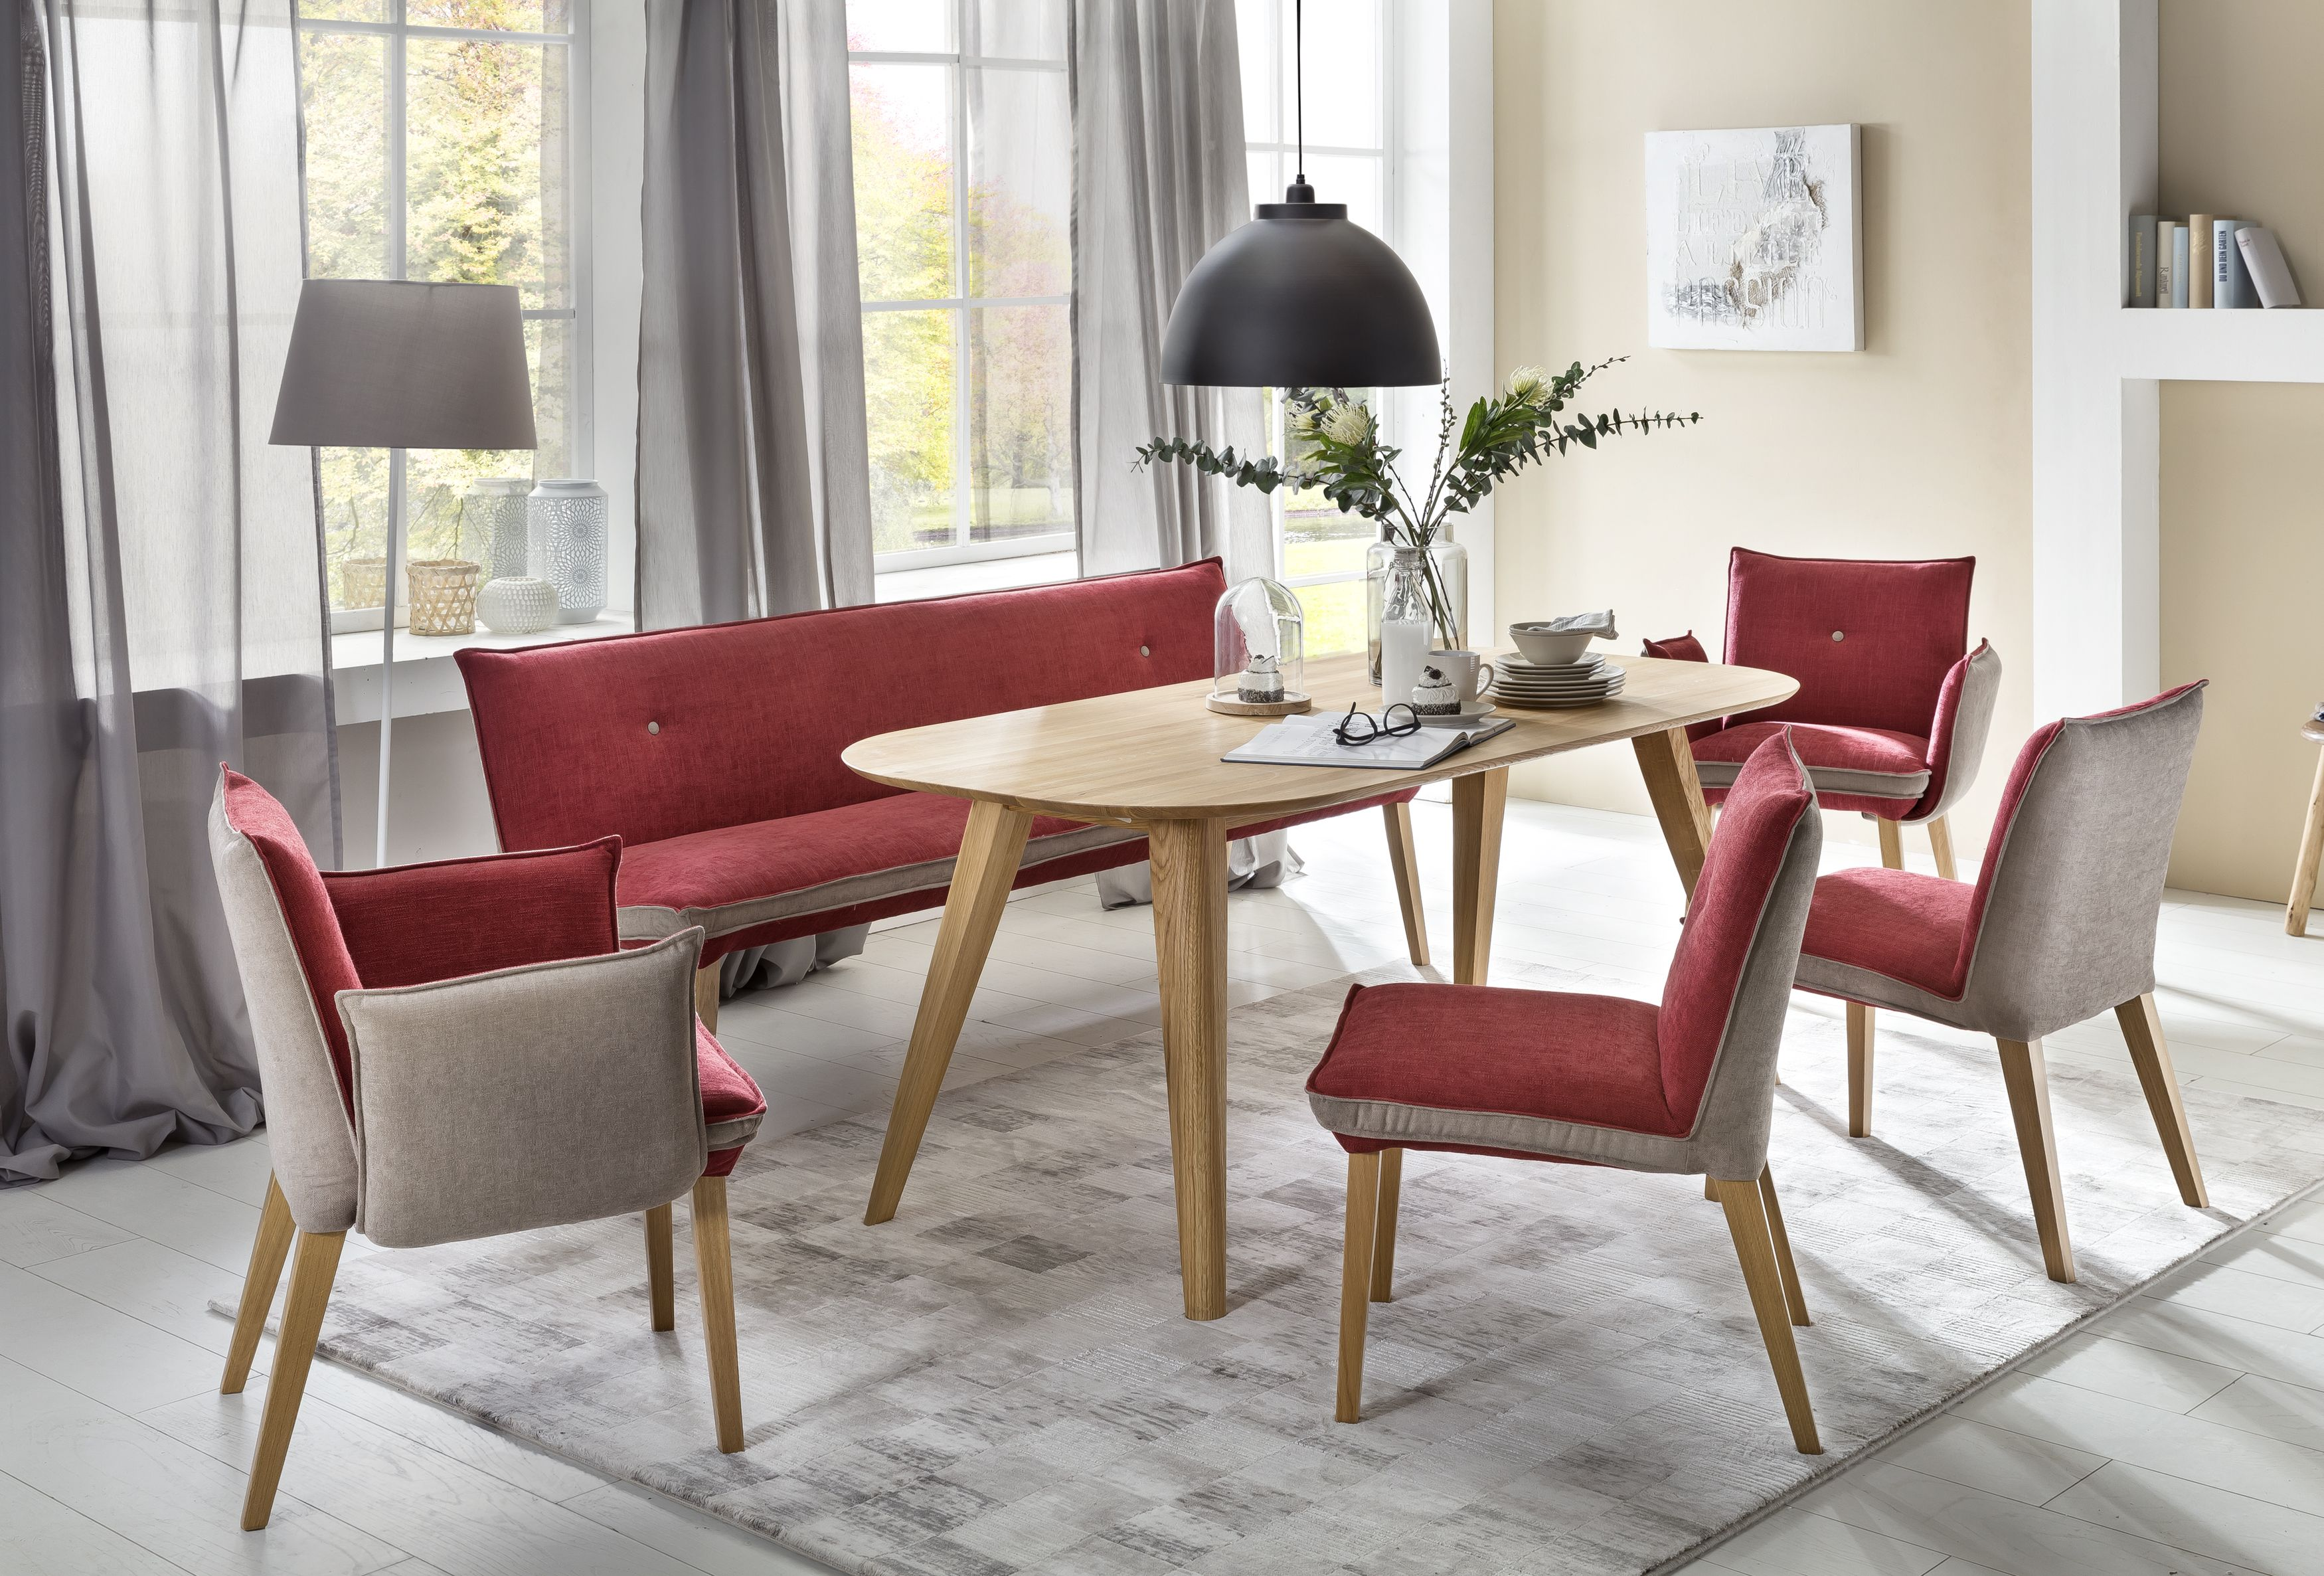 furniture trendy designs attachment board best room of modern and rug rugs